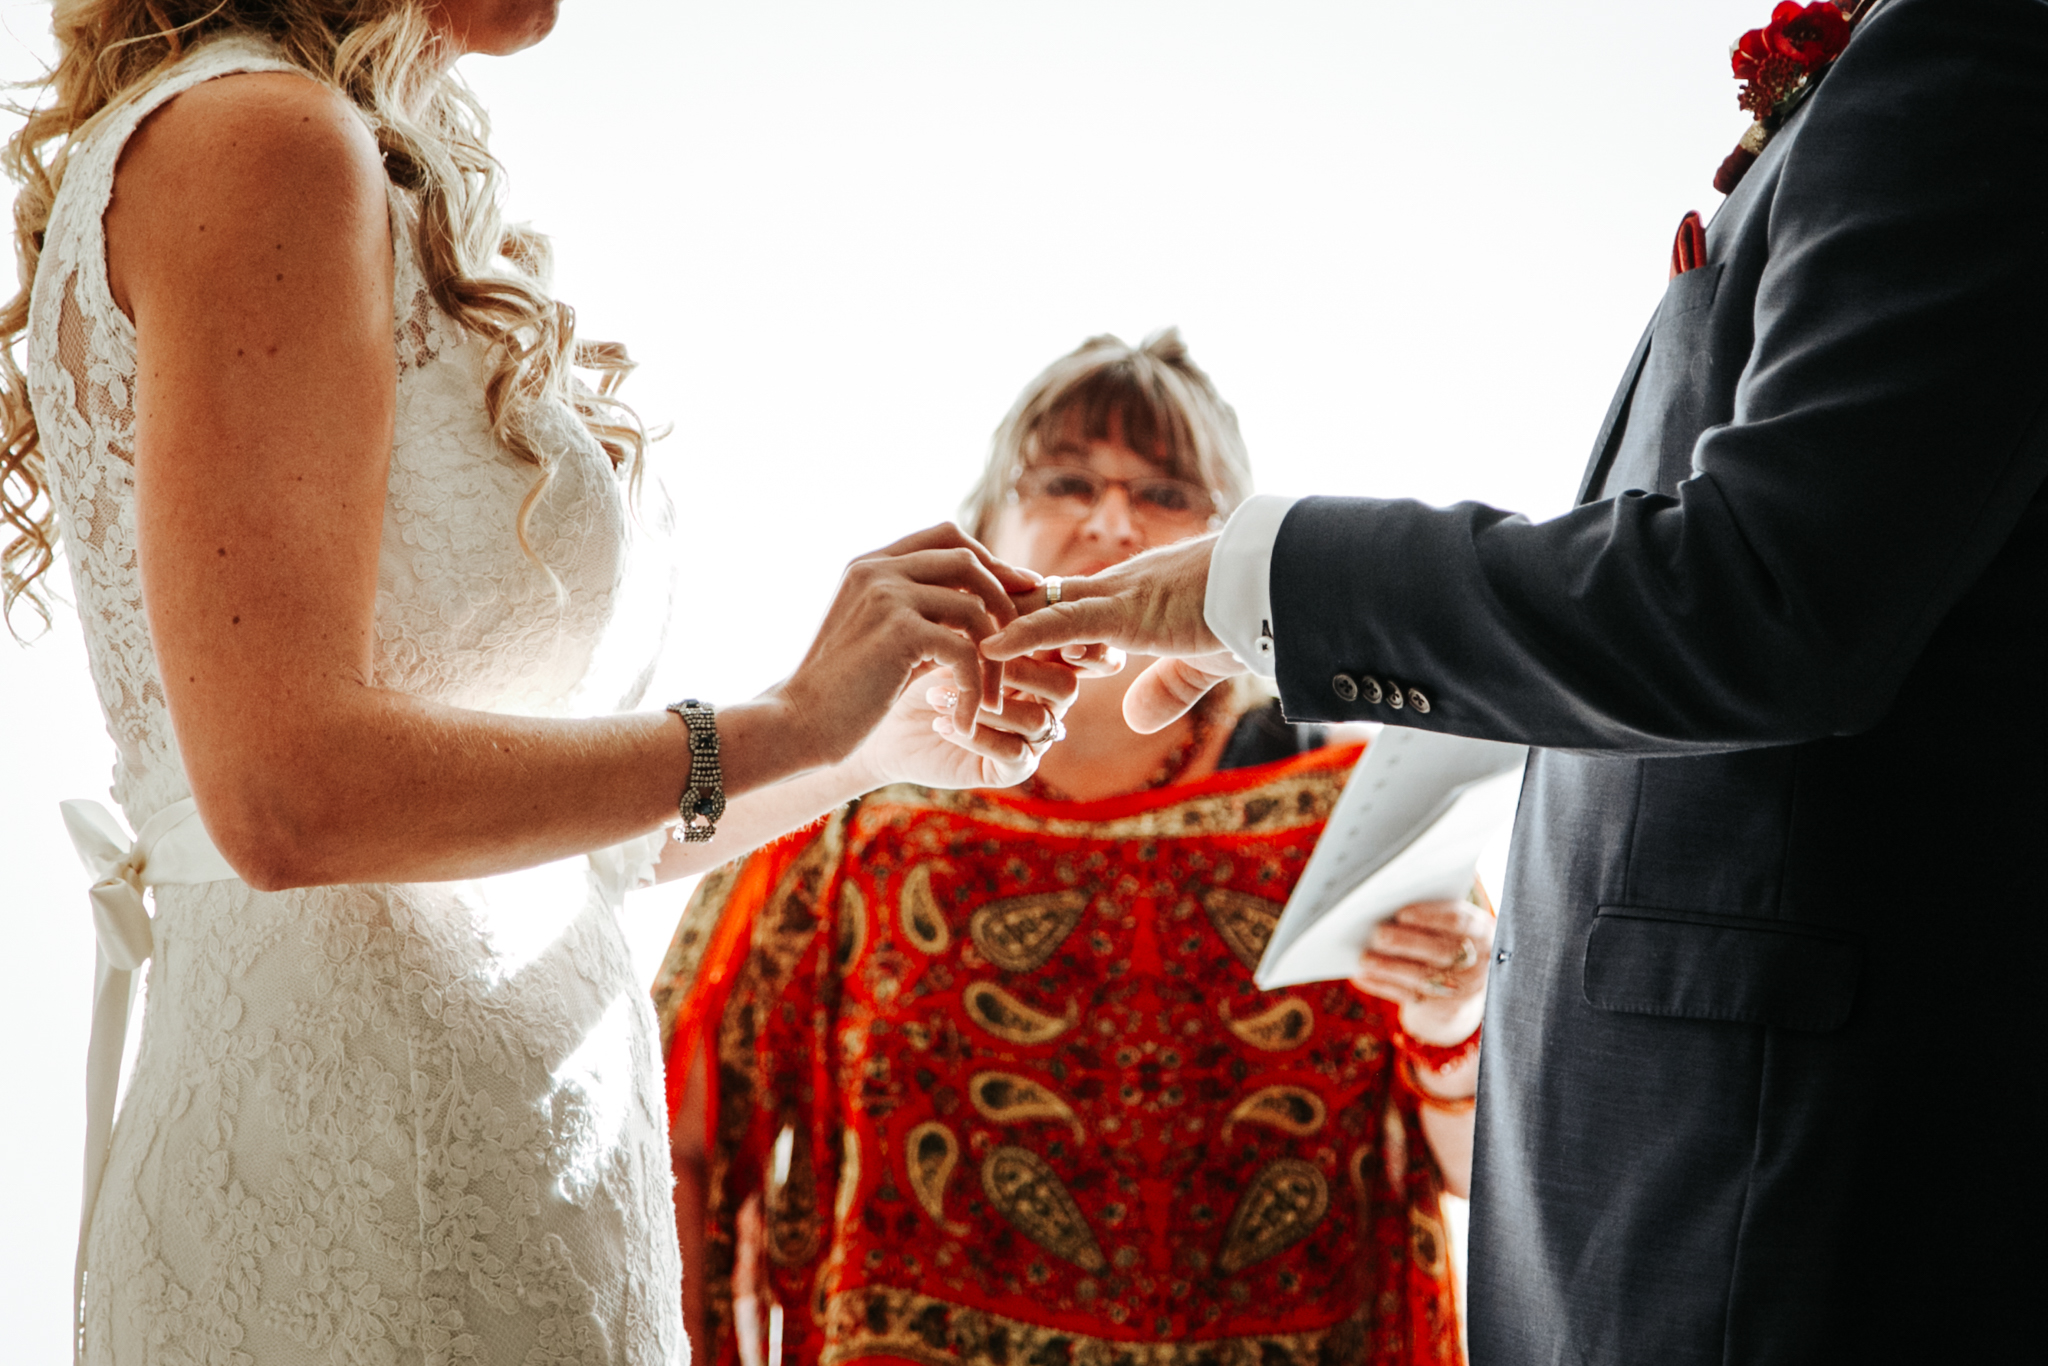 lethbridge-wedding-photography-love-and-be-loved-rocky-mountain-turf-club-ceremony-picture-image-photo-21.jpg